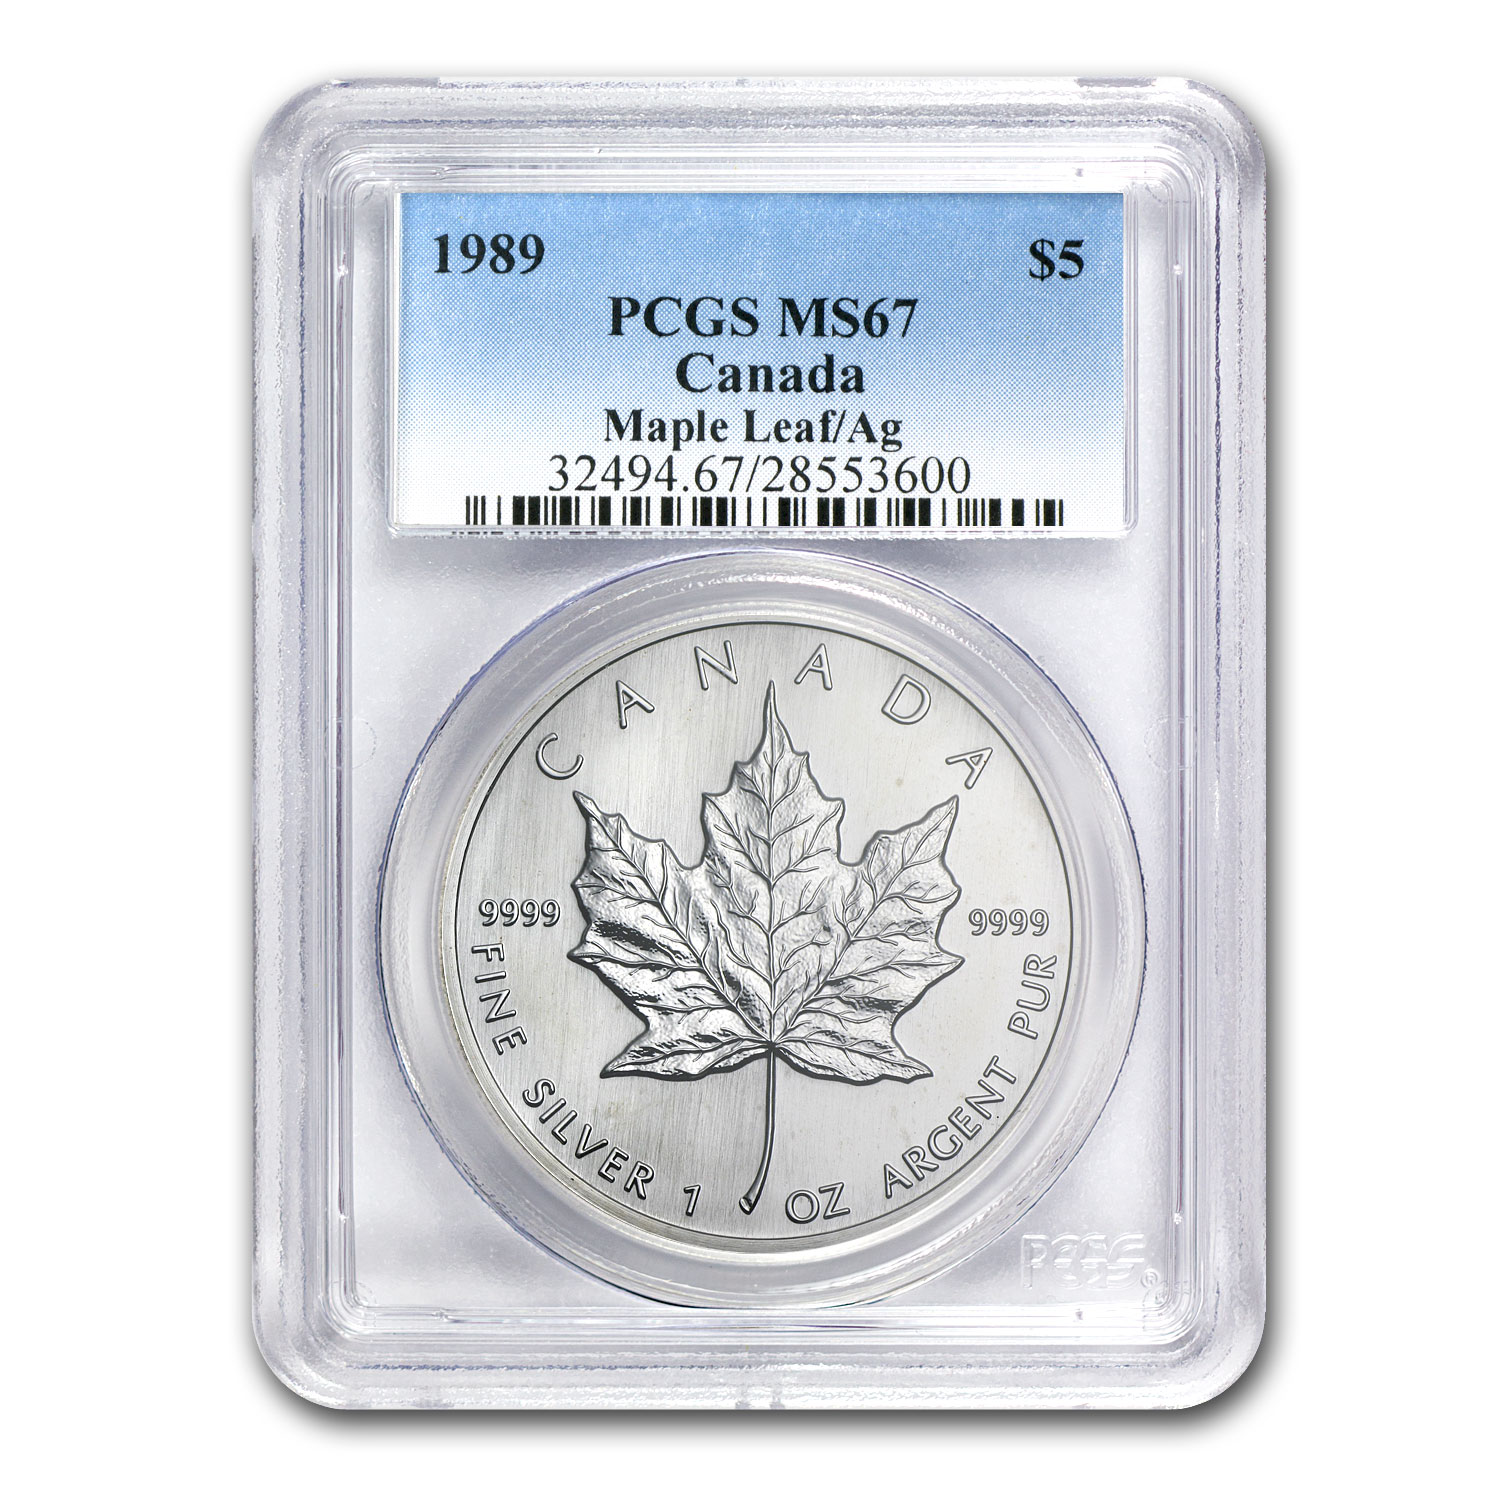 1989 1 oz Silver Canadian Maple Leaf MS-67 PCGS